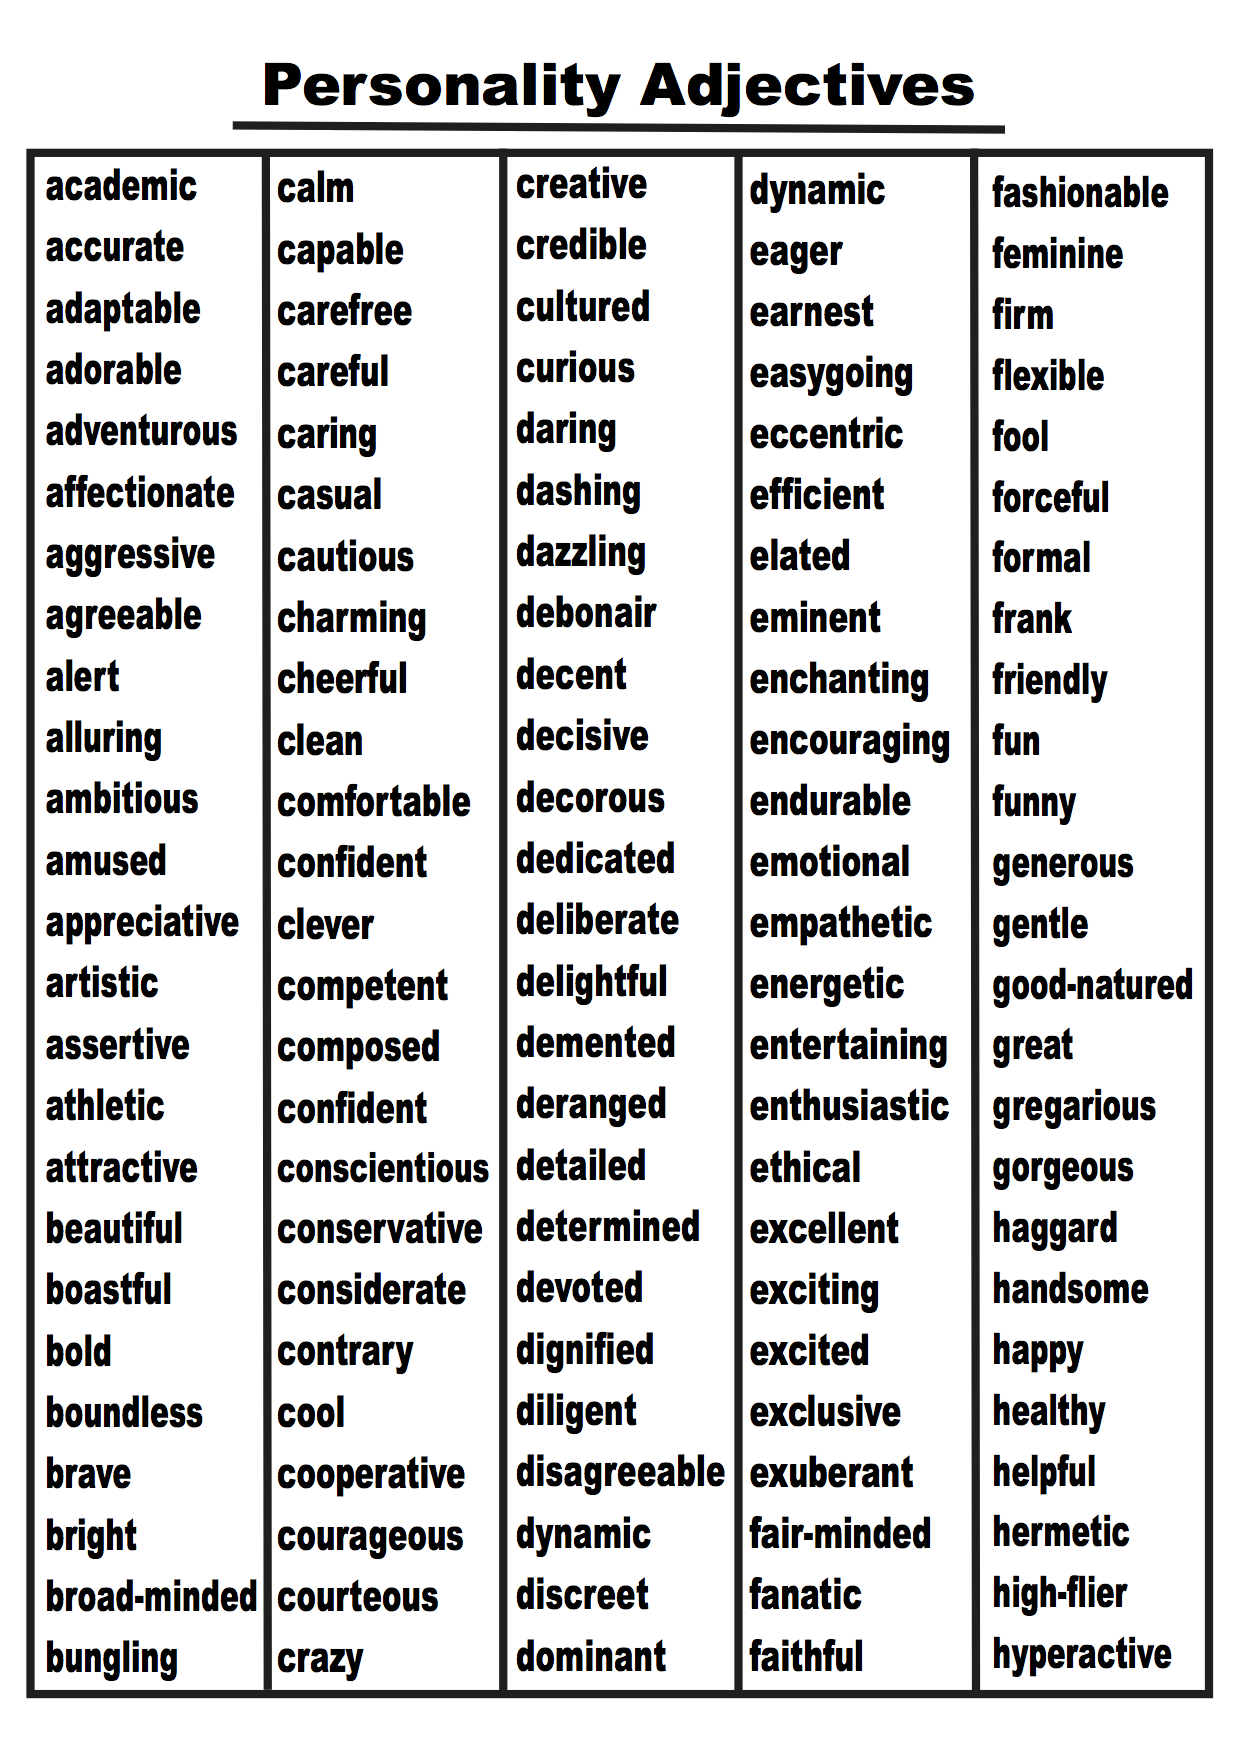 Personality Adjectives Word List